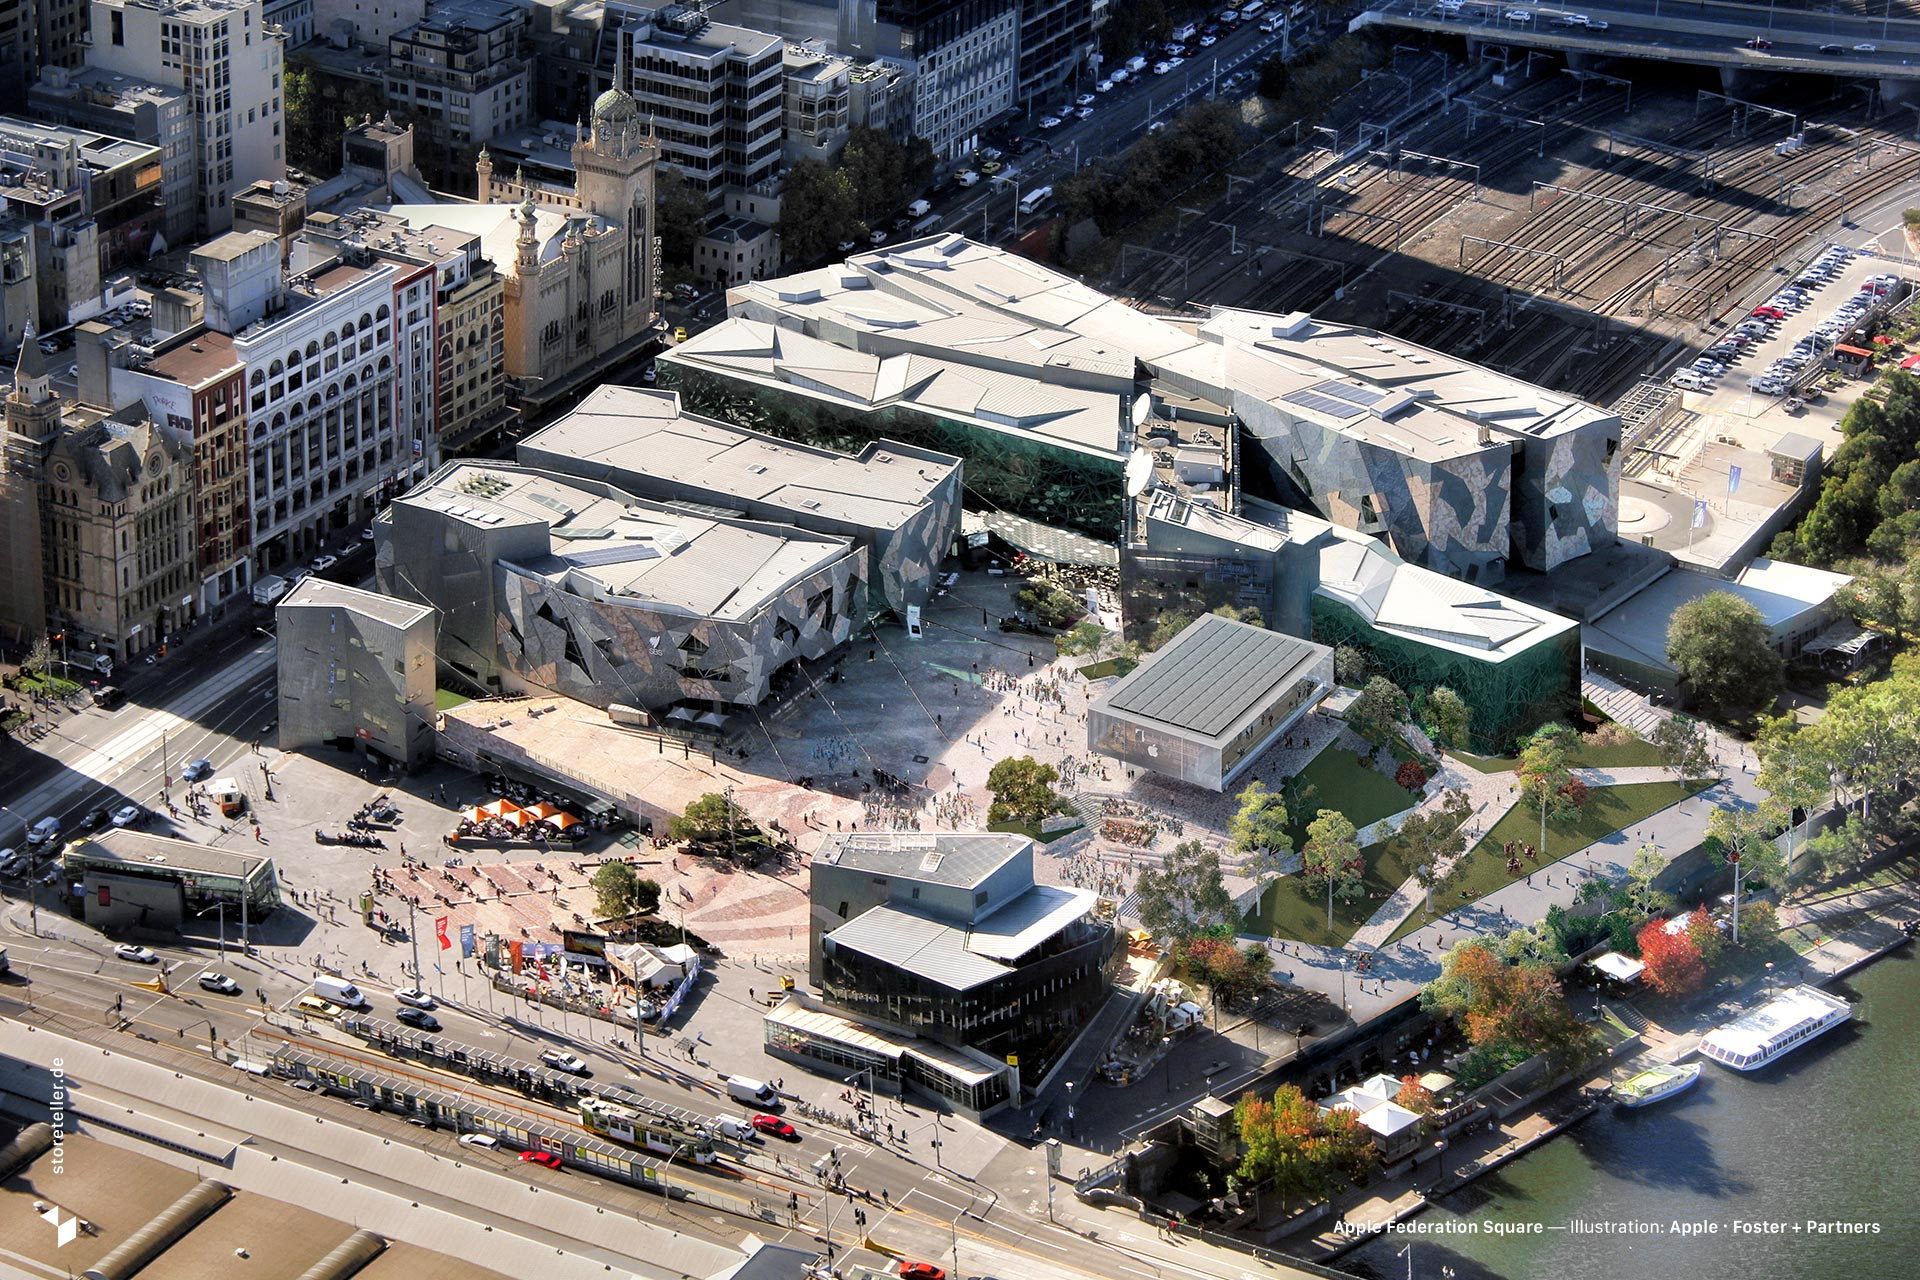 Apple Federation Square (2018)